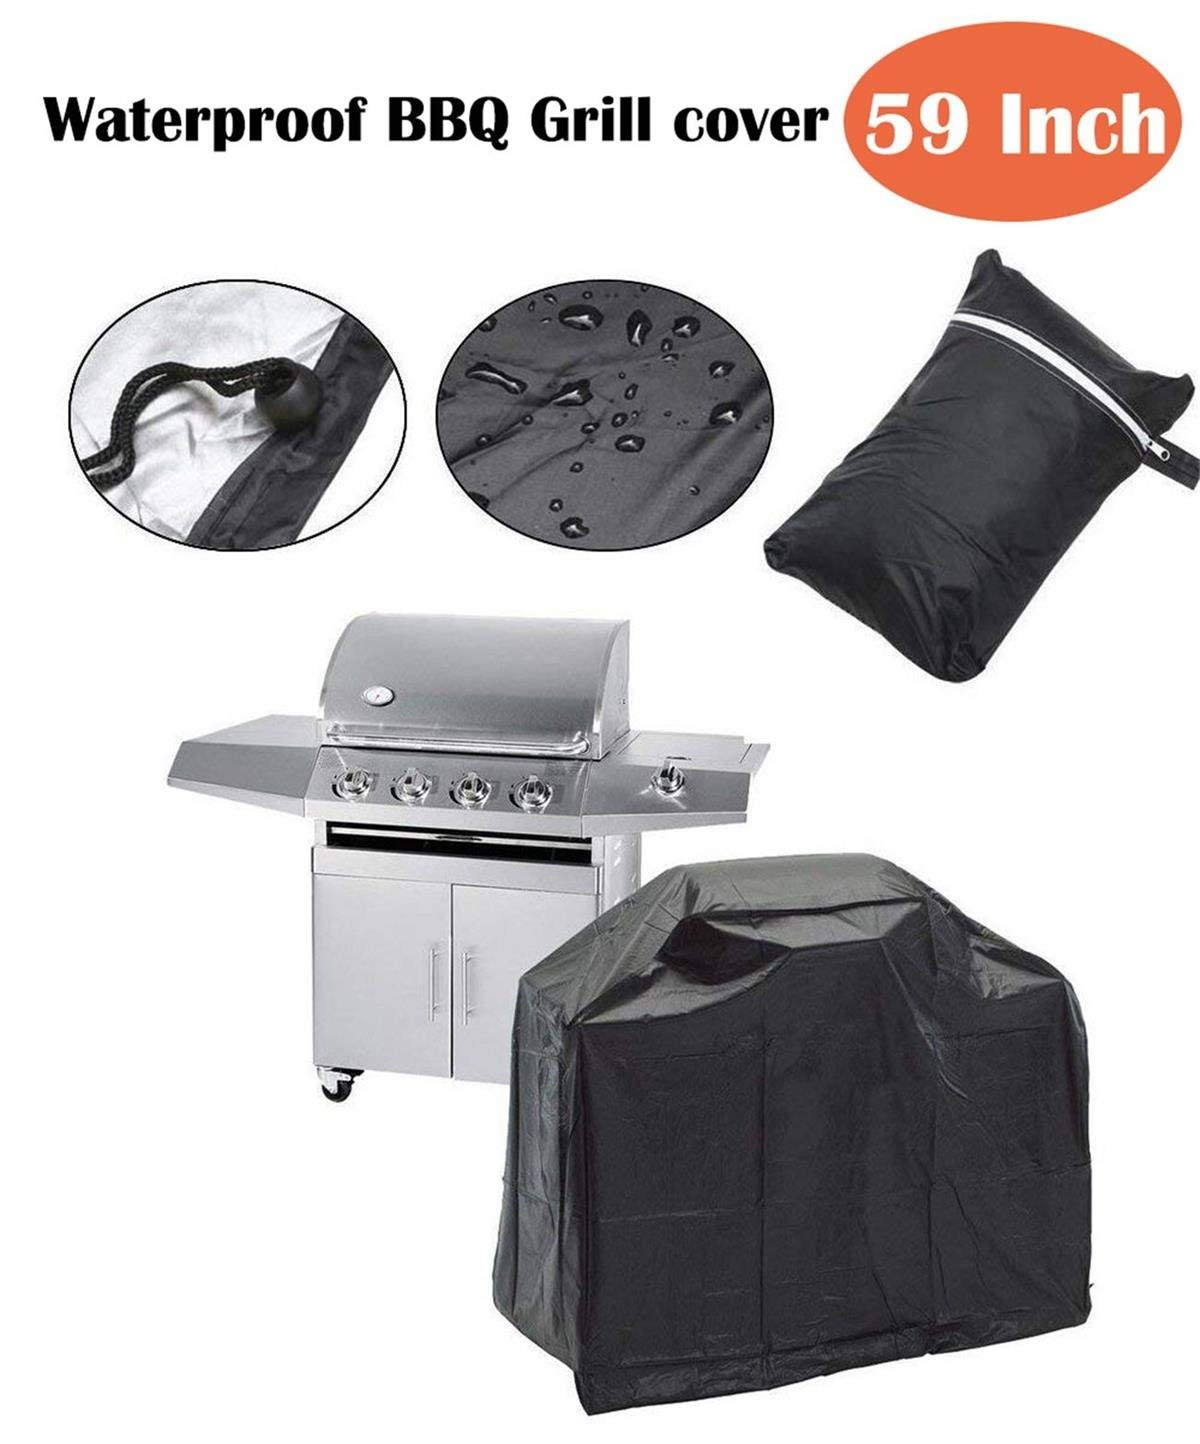 QueenA Upgraded BBQ Grill Cover 59 Inch, Grill Covers Heavy Duty Waterproof UV Protection Crack Resistant for Outdoor, Durable Barbecue Oxford Grill Cover for Most Brands of Grill